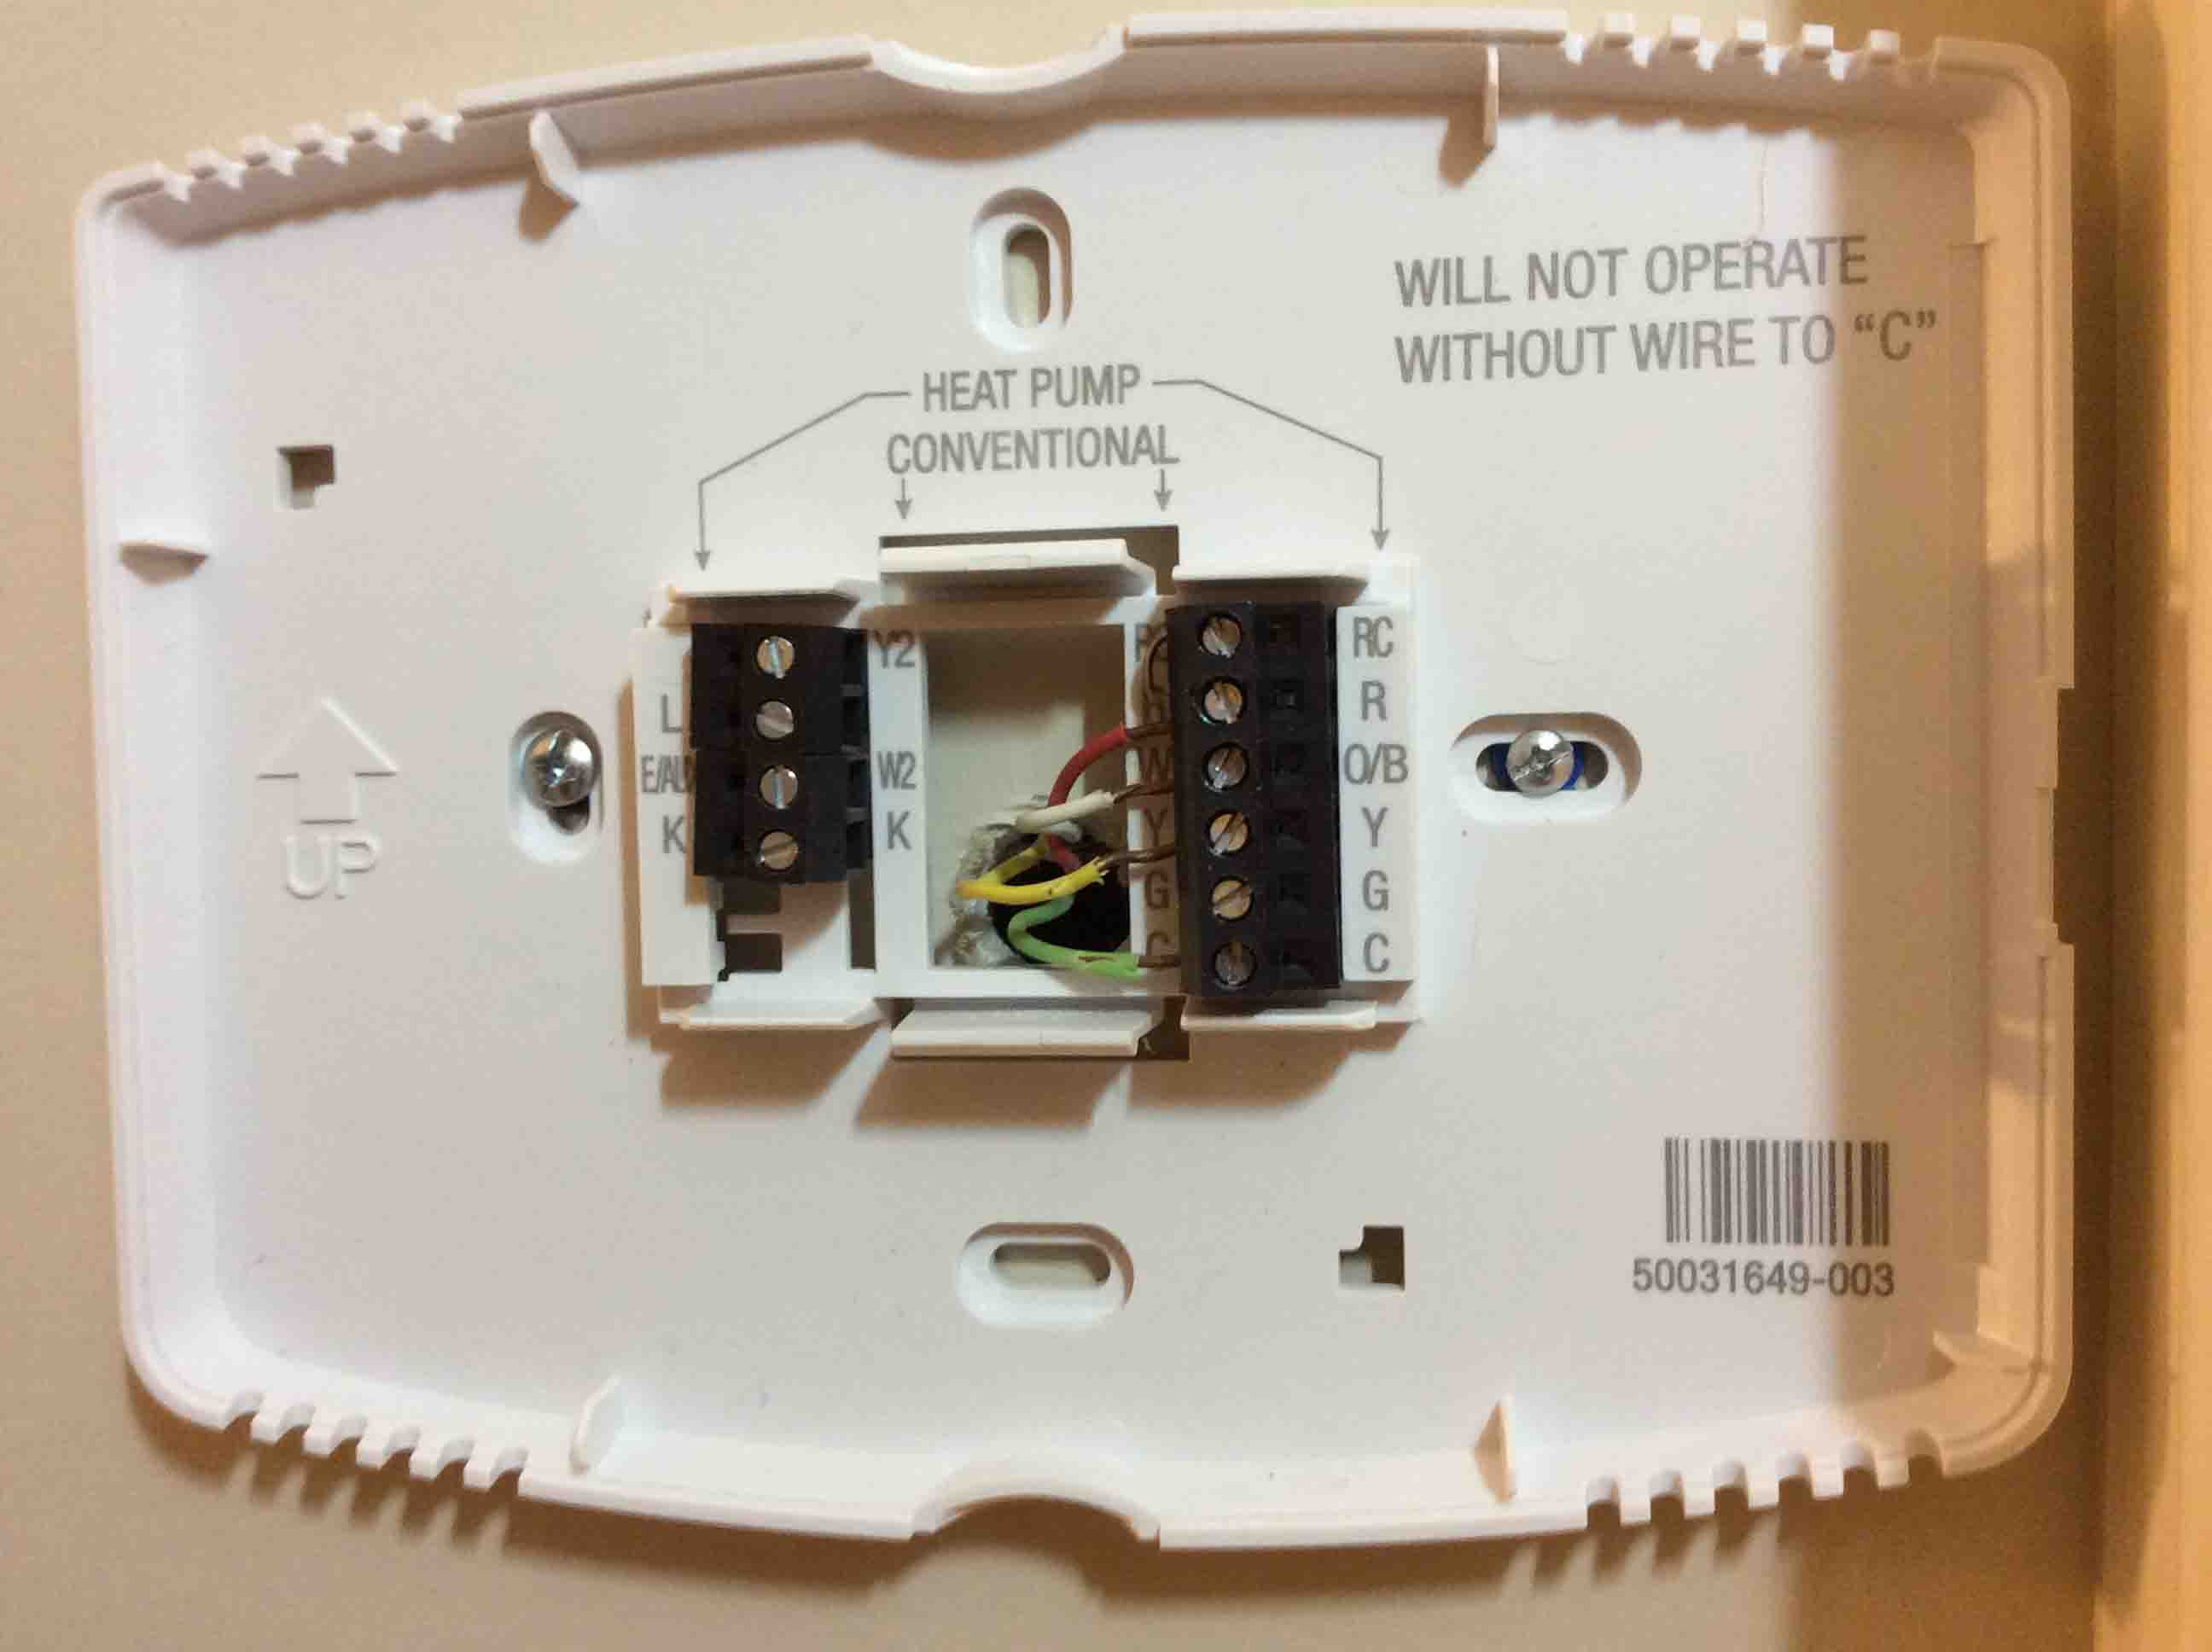 HoneywellWiFiThermostatWallPlateTypicalWiring_001 honeywell smart thermostat wiring instructions rth9580wf tom's,6 Wire Thermostat Wiring Code